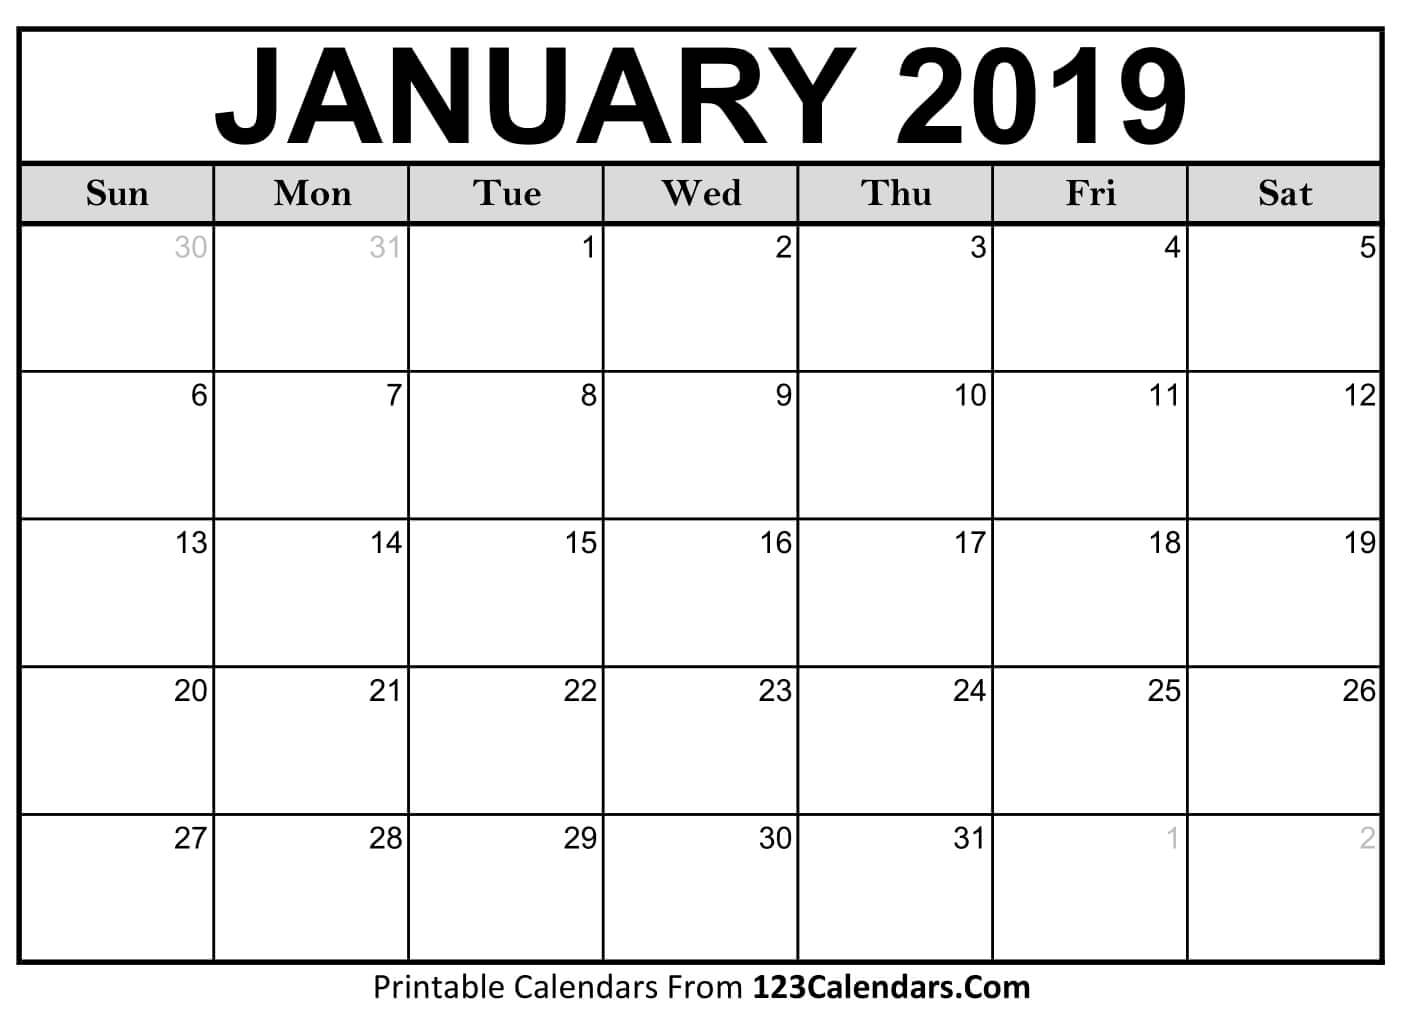 2019 Calendar Coloring Pages With January Free